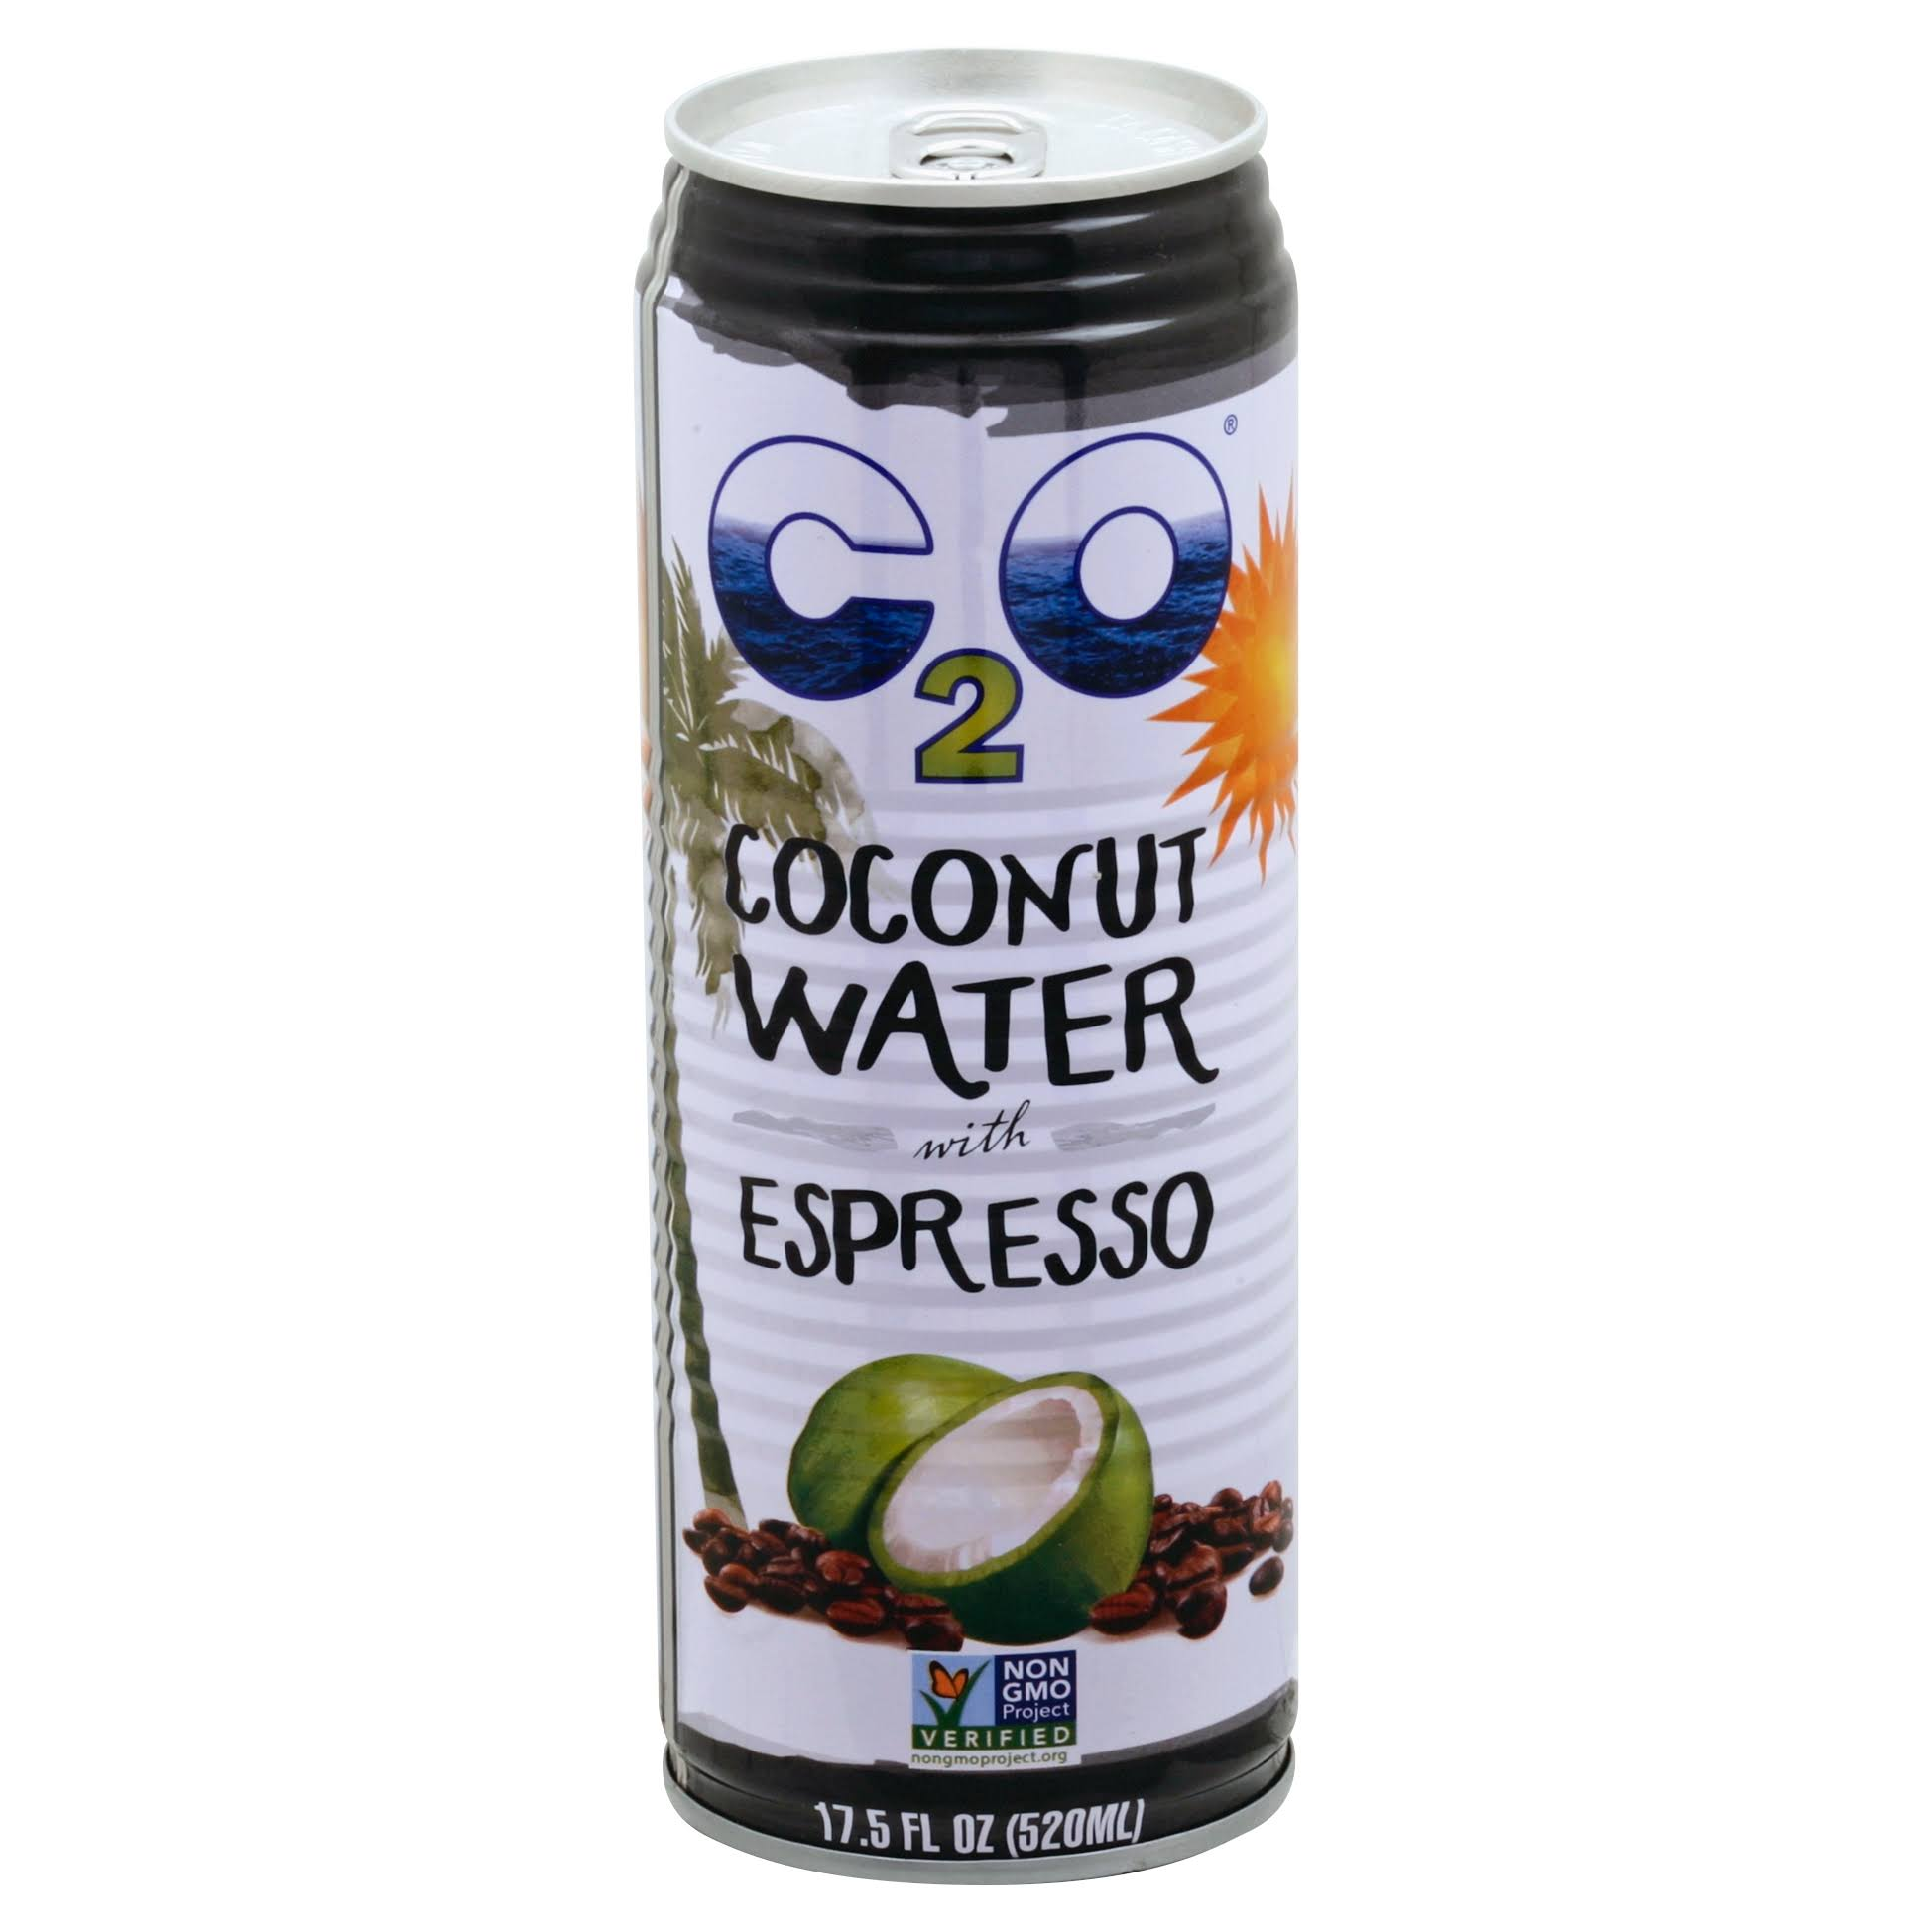 C2O Coconut Water, with Espresso - 17.5 fl oz